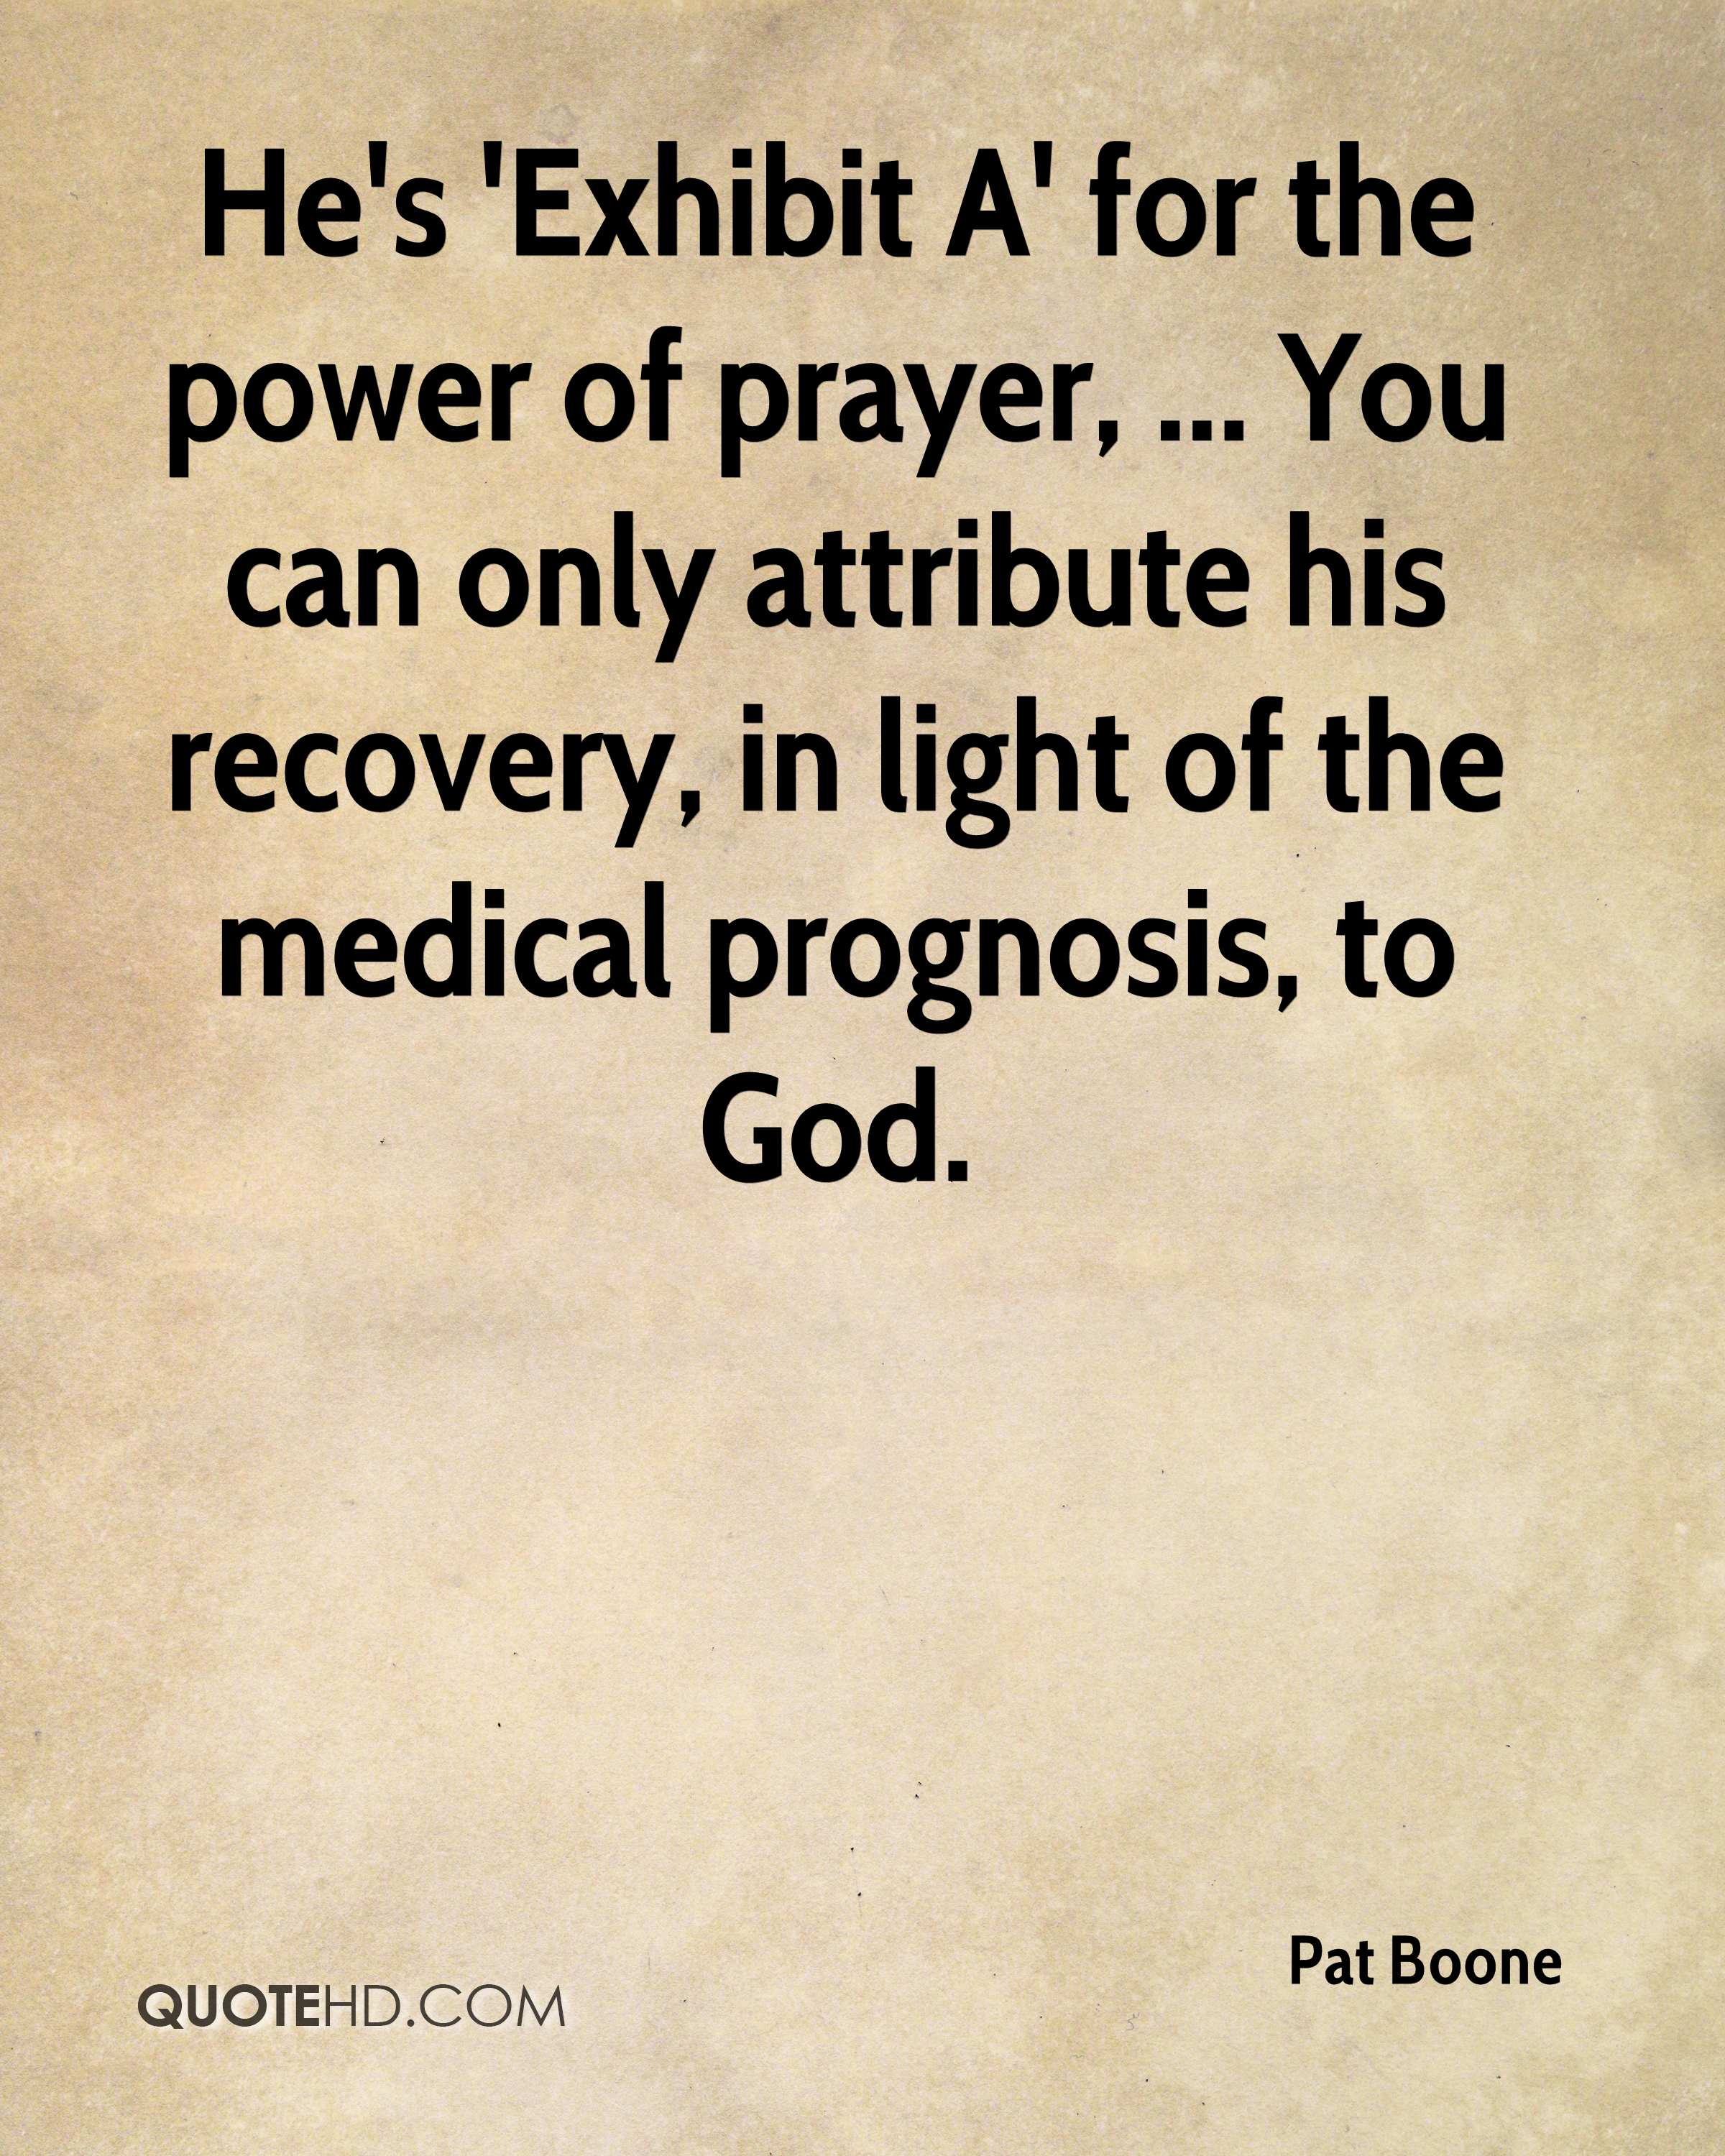 Power Of Prayer Quotes Pat Boone Quotes  Quotehd